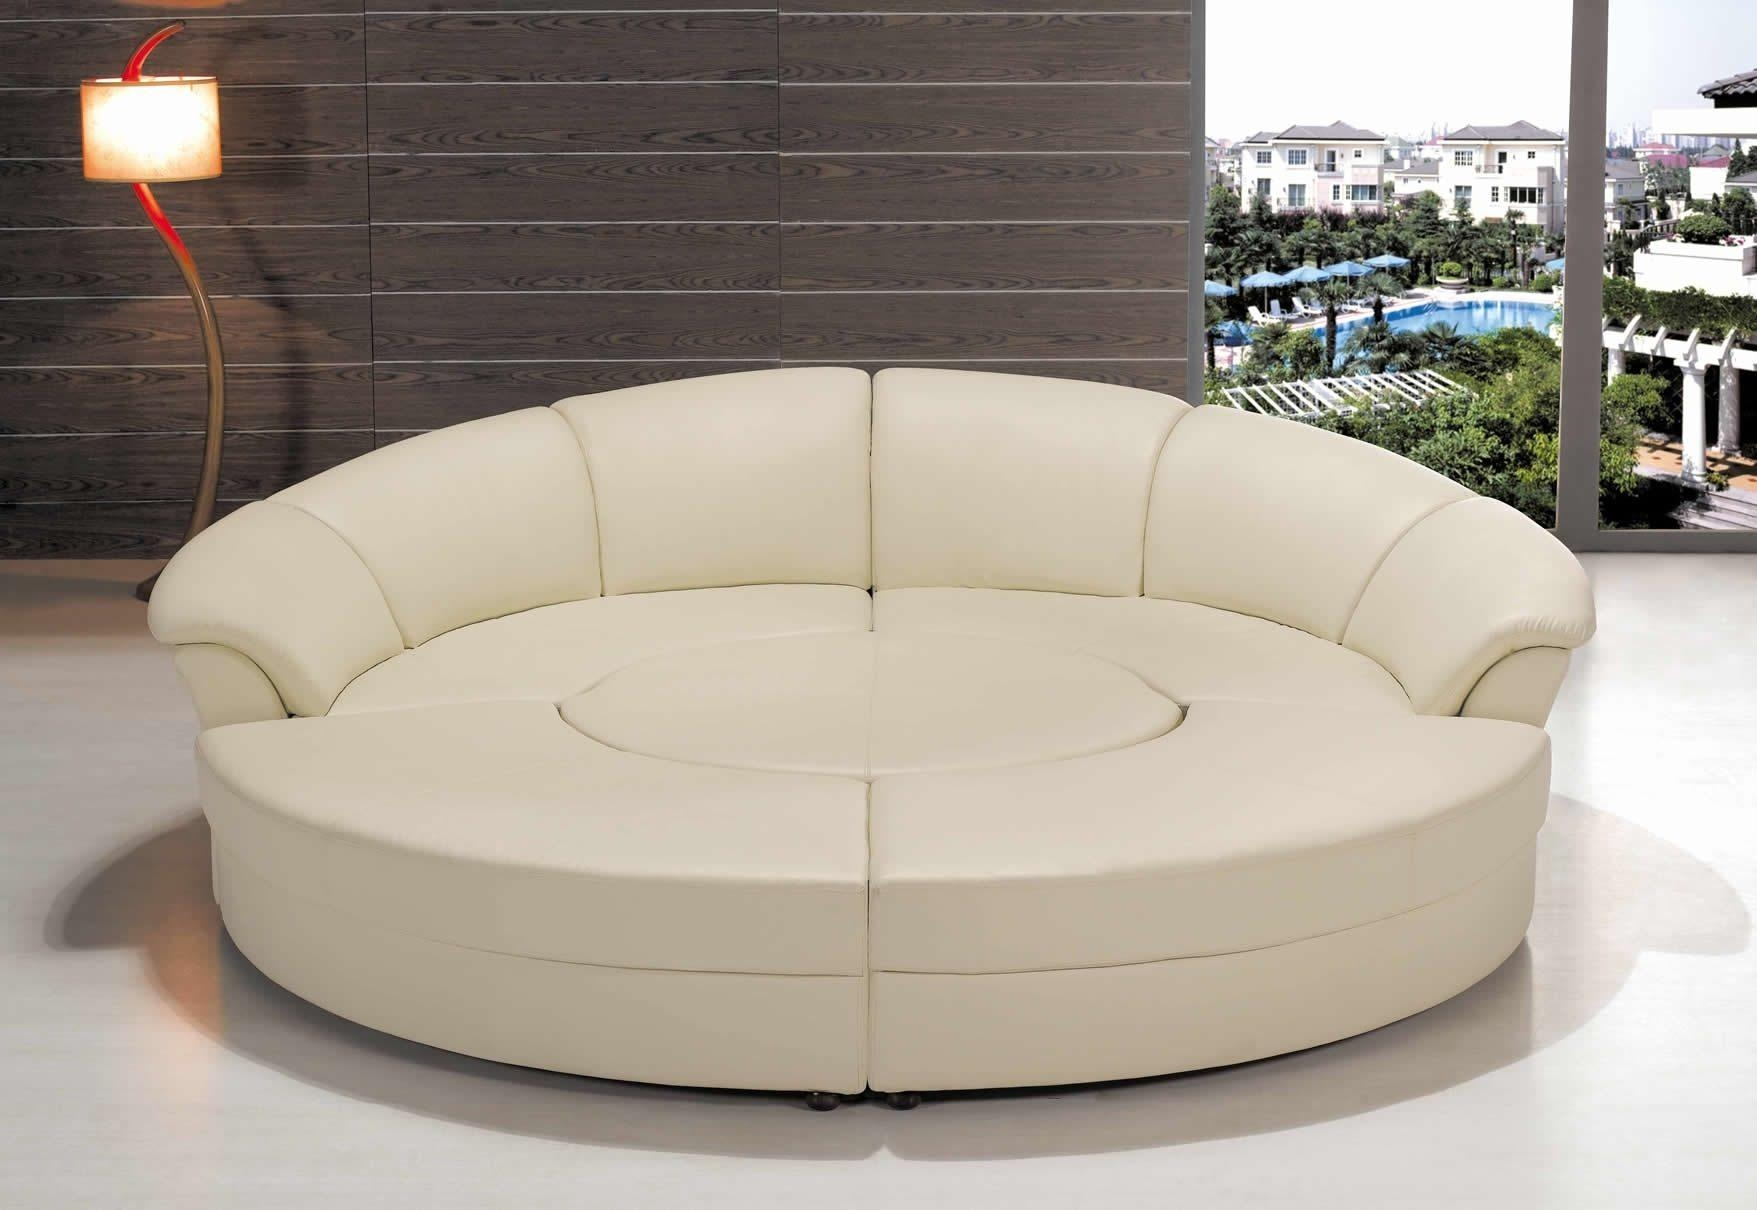 Circular Sofa Bed | Tehranmix Decoration For Round Sofas (View 2 of 20)